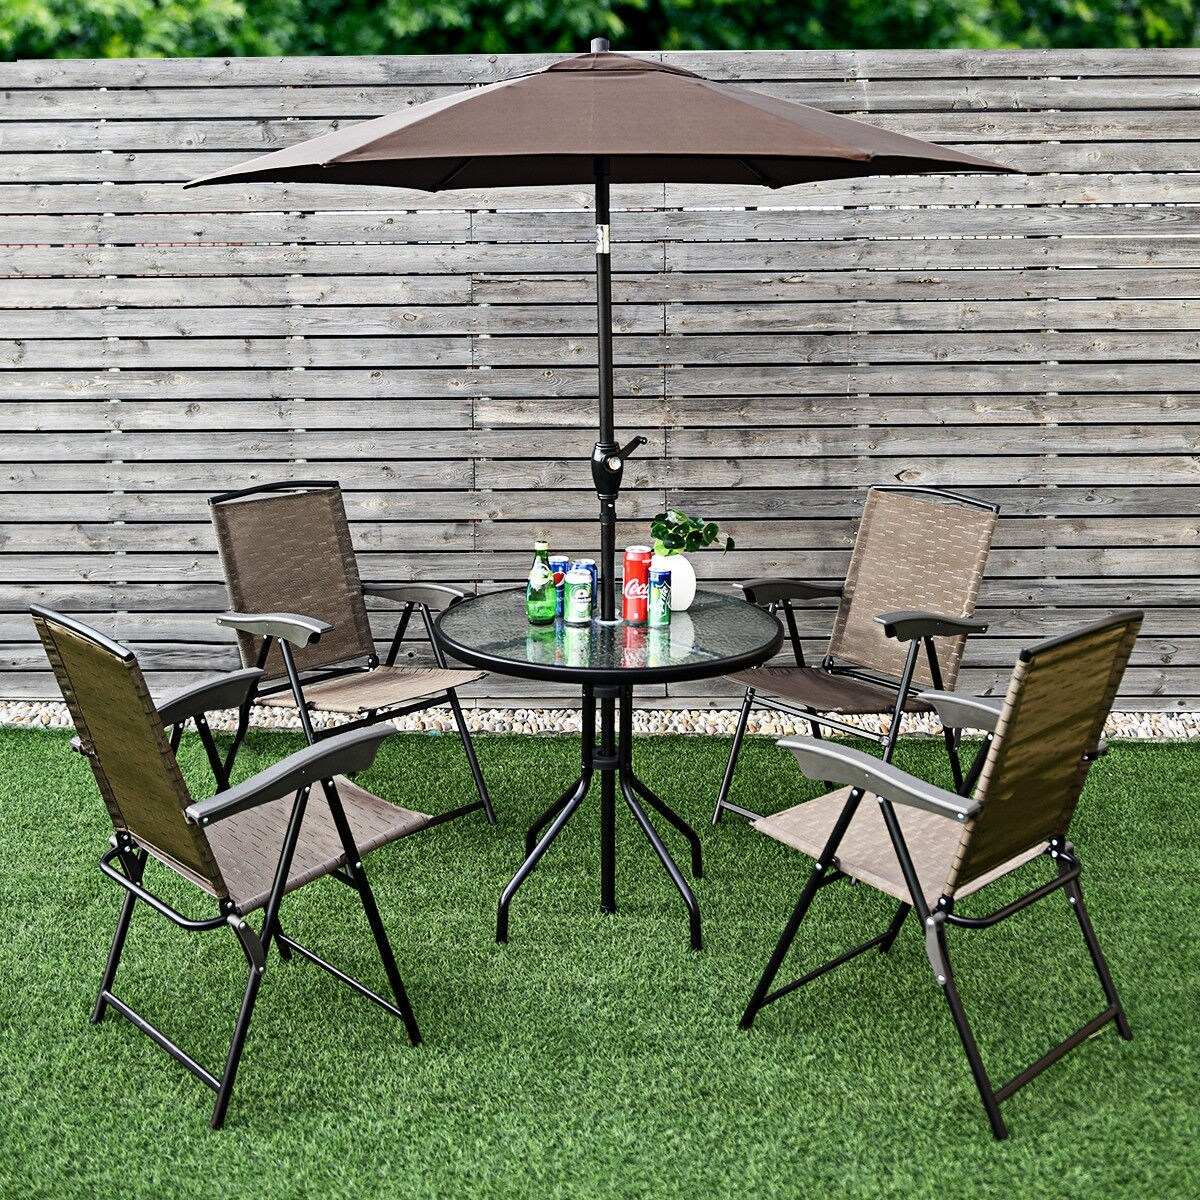 Round Table Patio Furniture Sets Costway 6pcs Patio Garden Furniture Set 4 Folding Chair Round Table Crank Tilt Umbrella As Pic 6 Pc Set